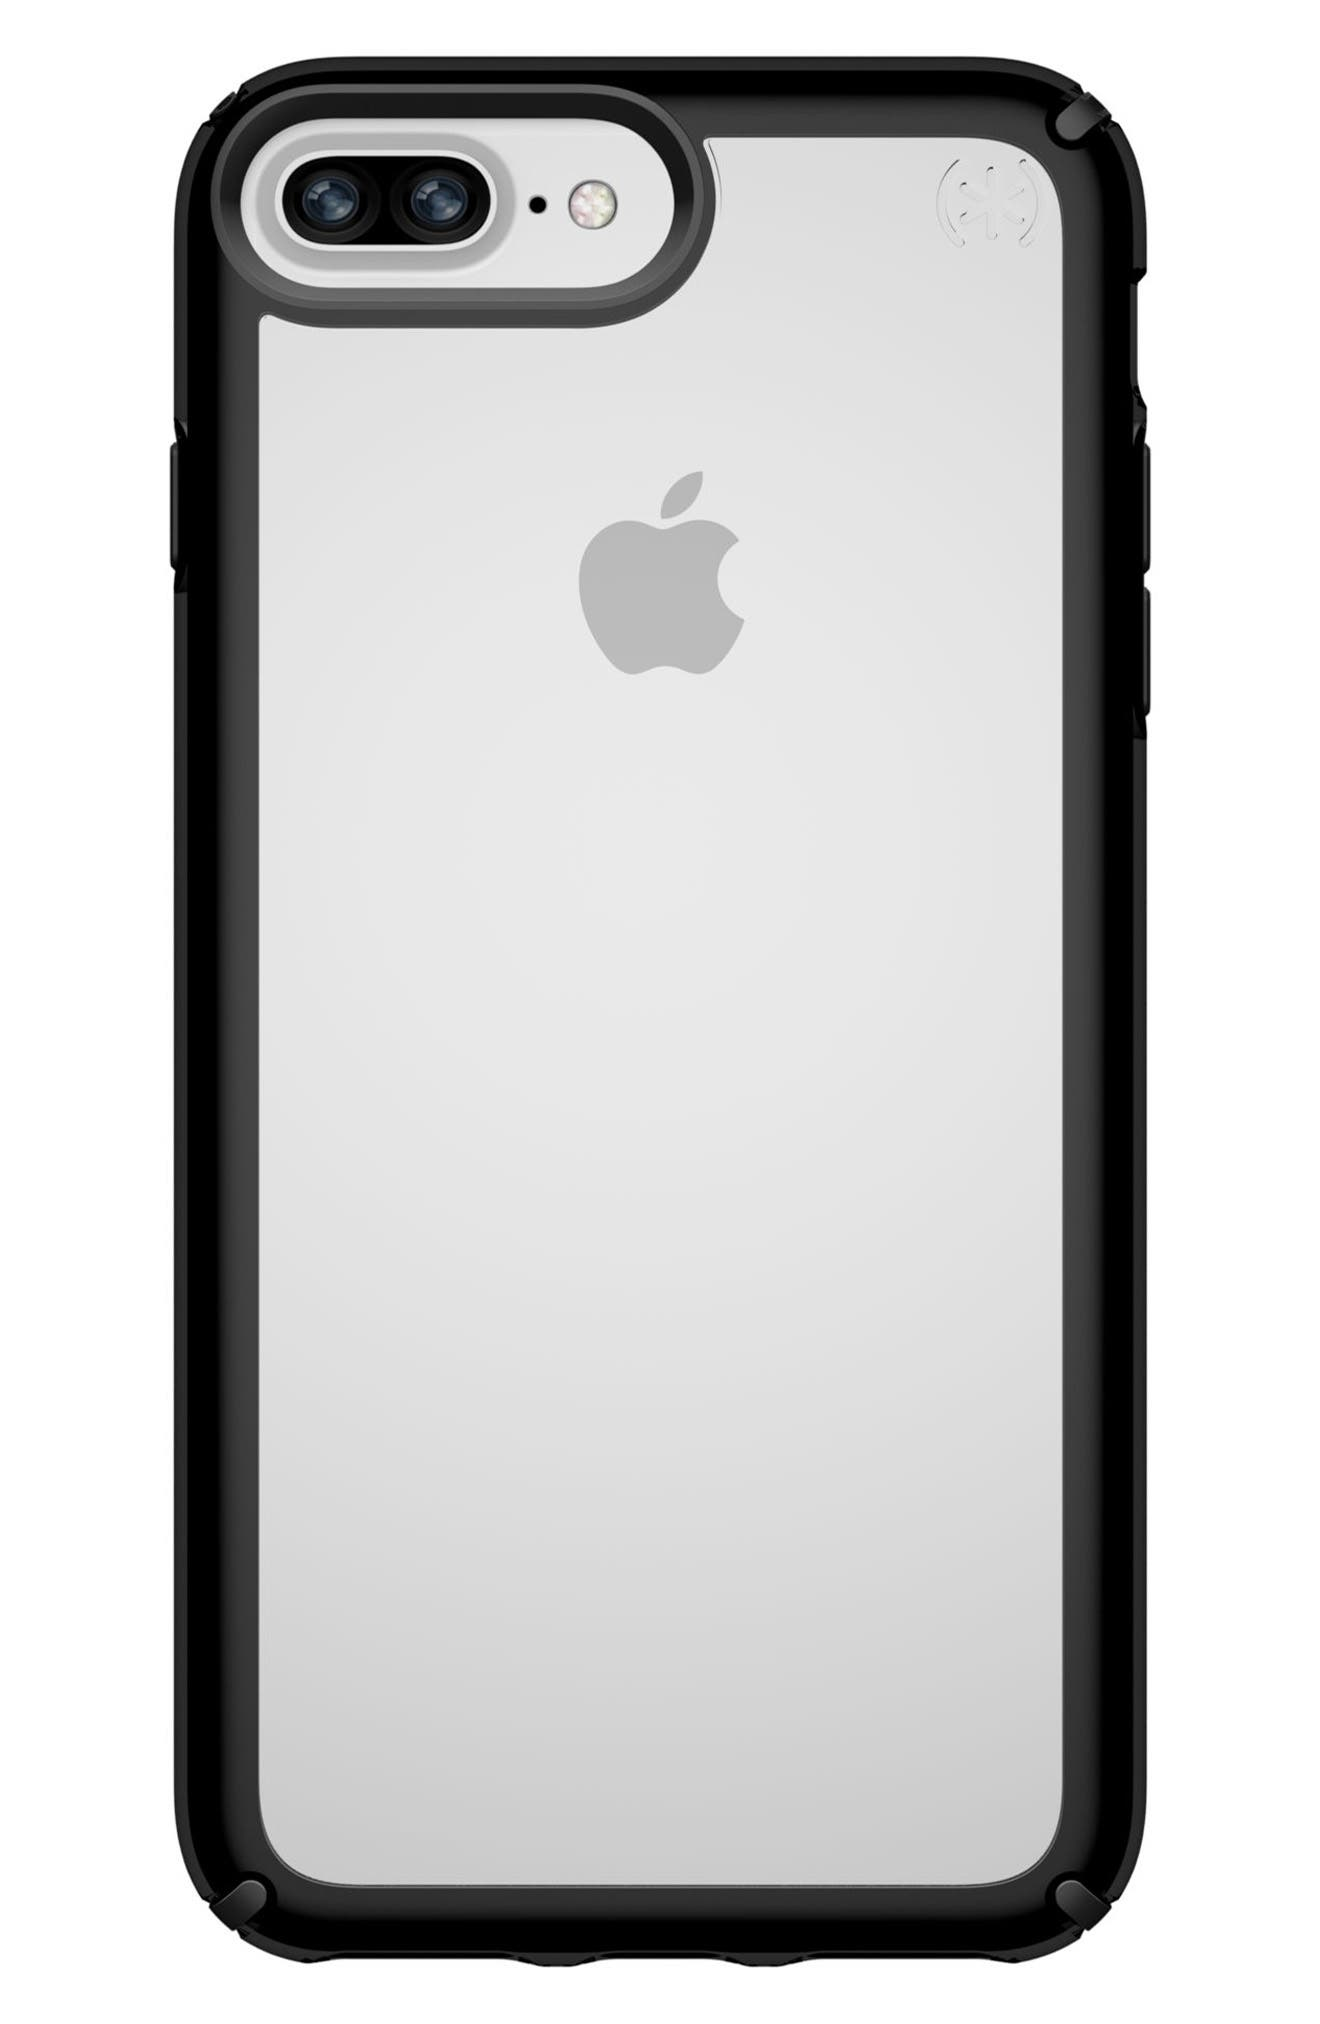 Alternate Image 1 Selected - Speck iPhone 6/6s/7/8 Plus Case